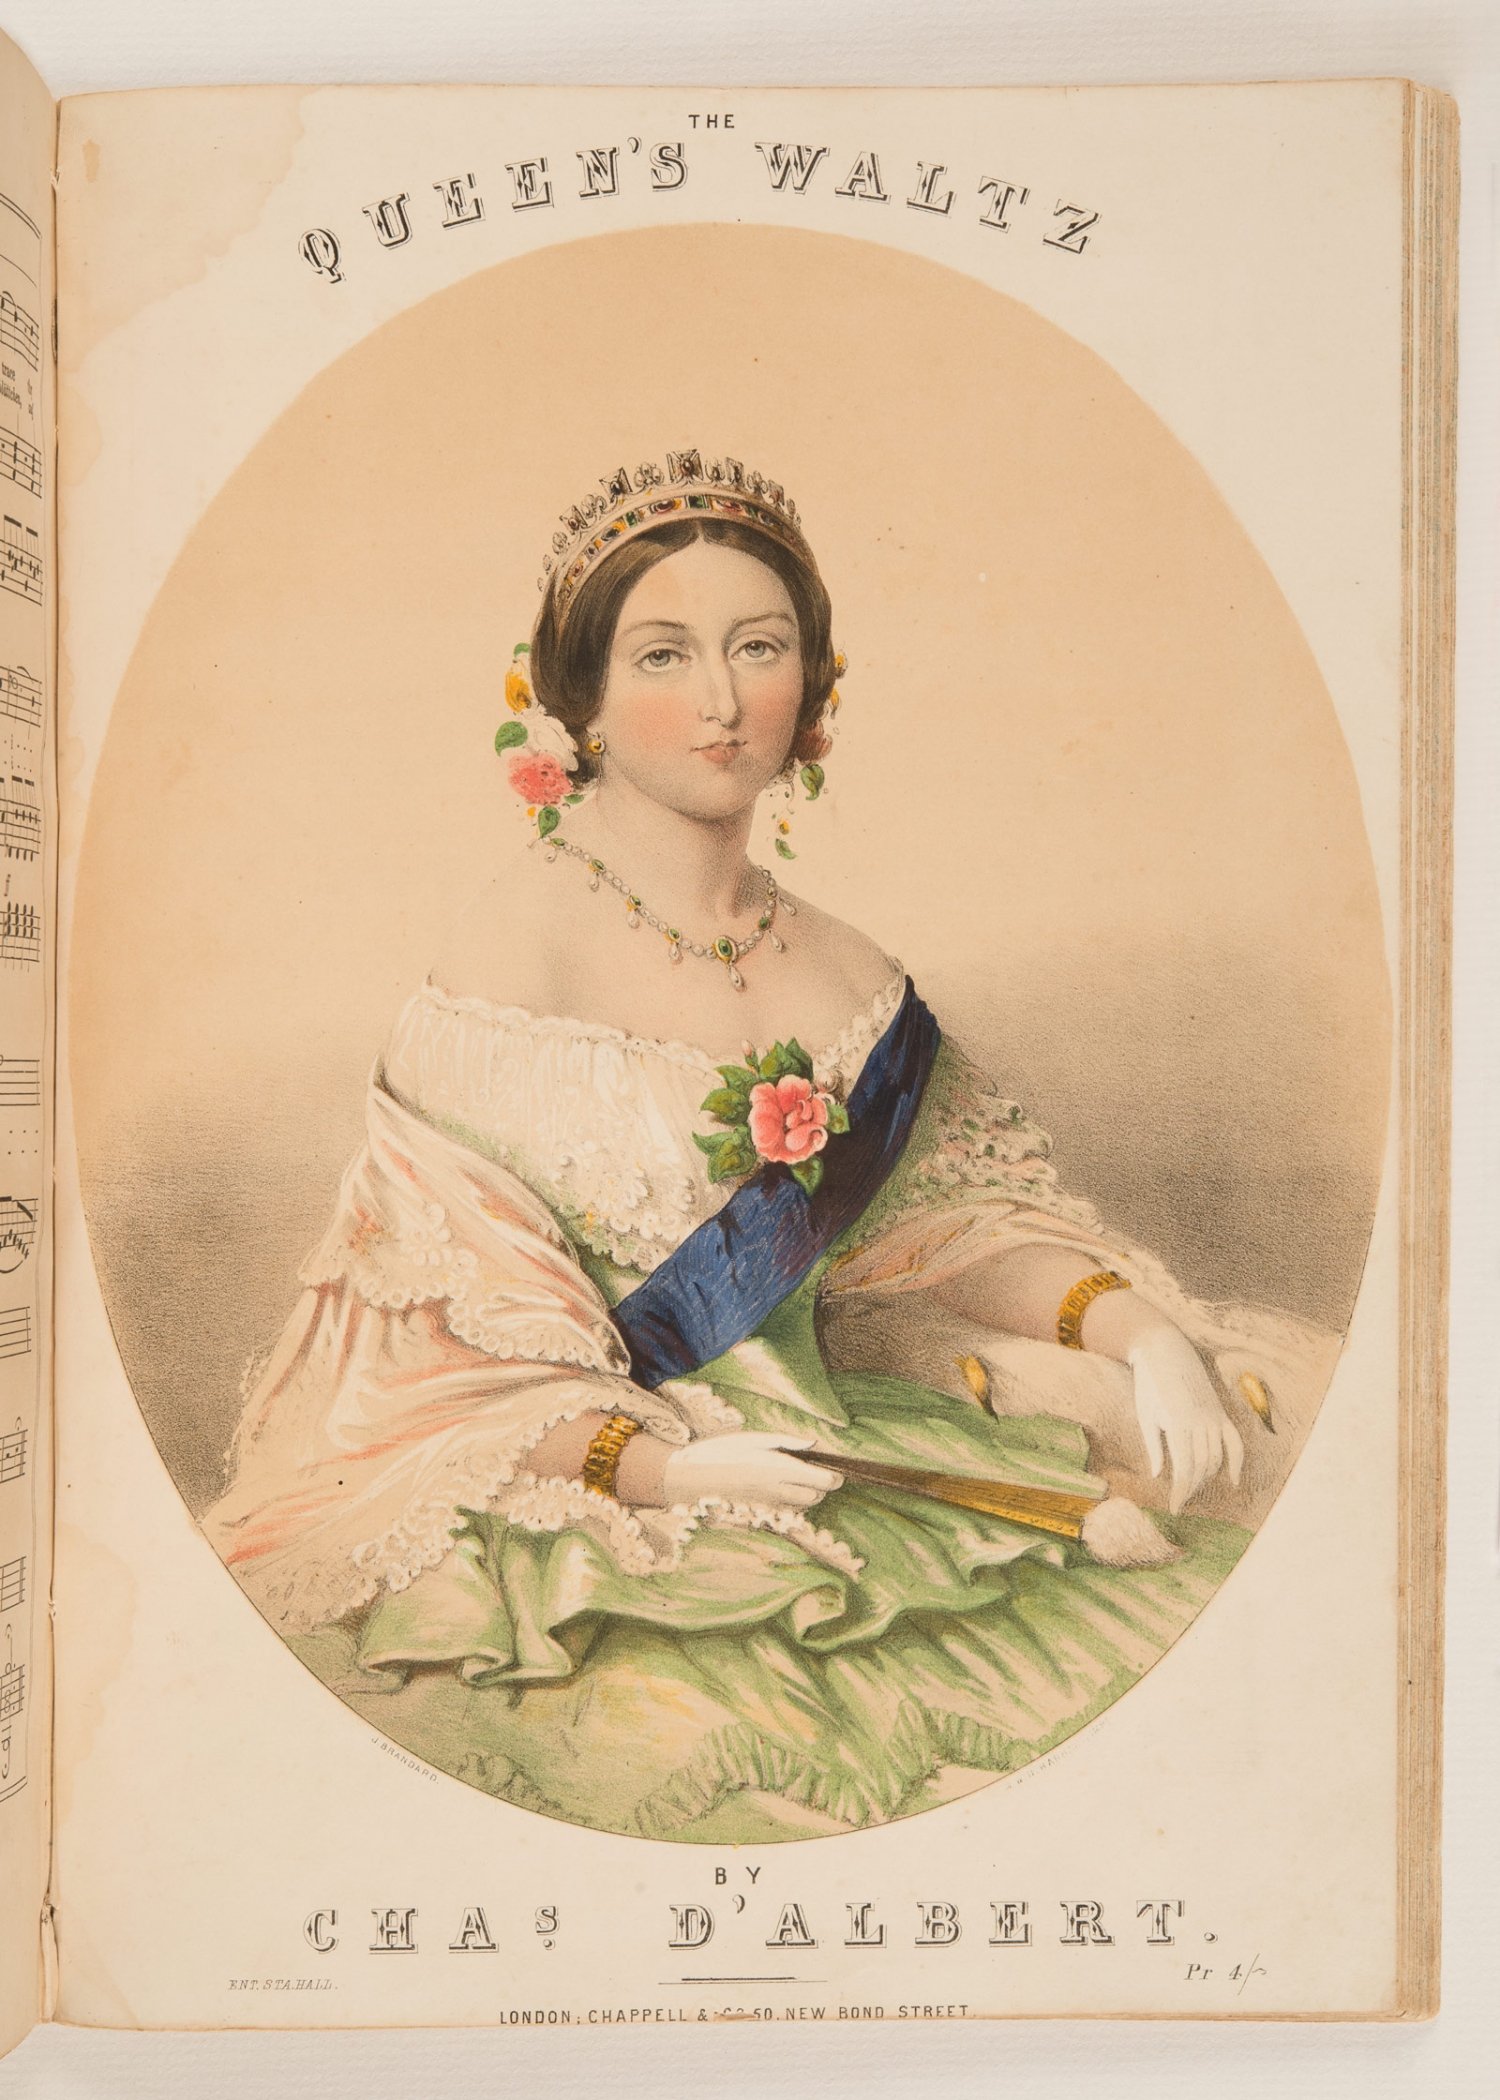 Cover of sheet music, 'The Queen's Waltz', by Charles D'Albert, published 1857